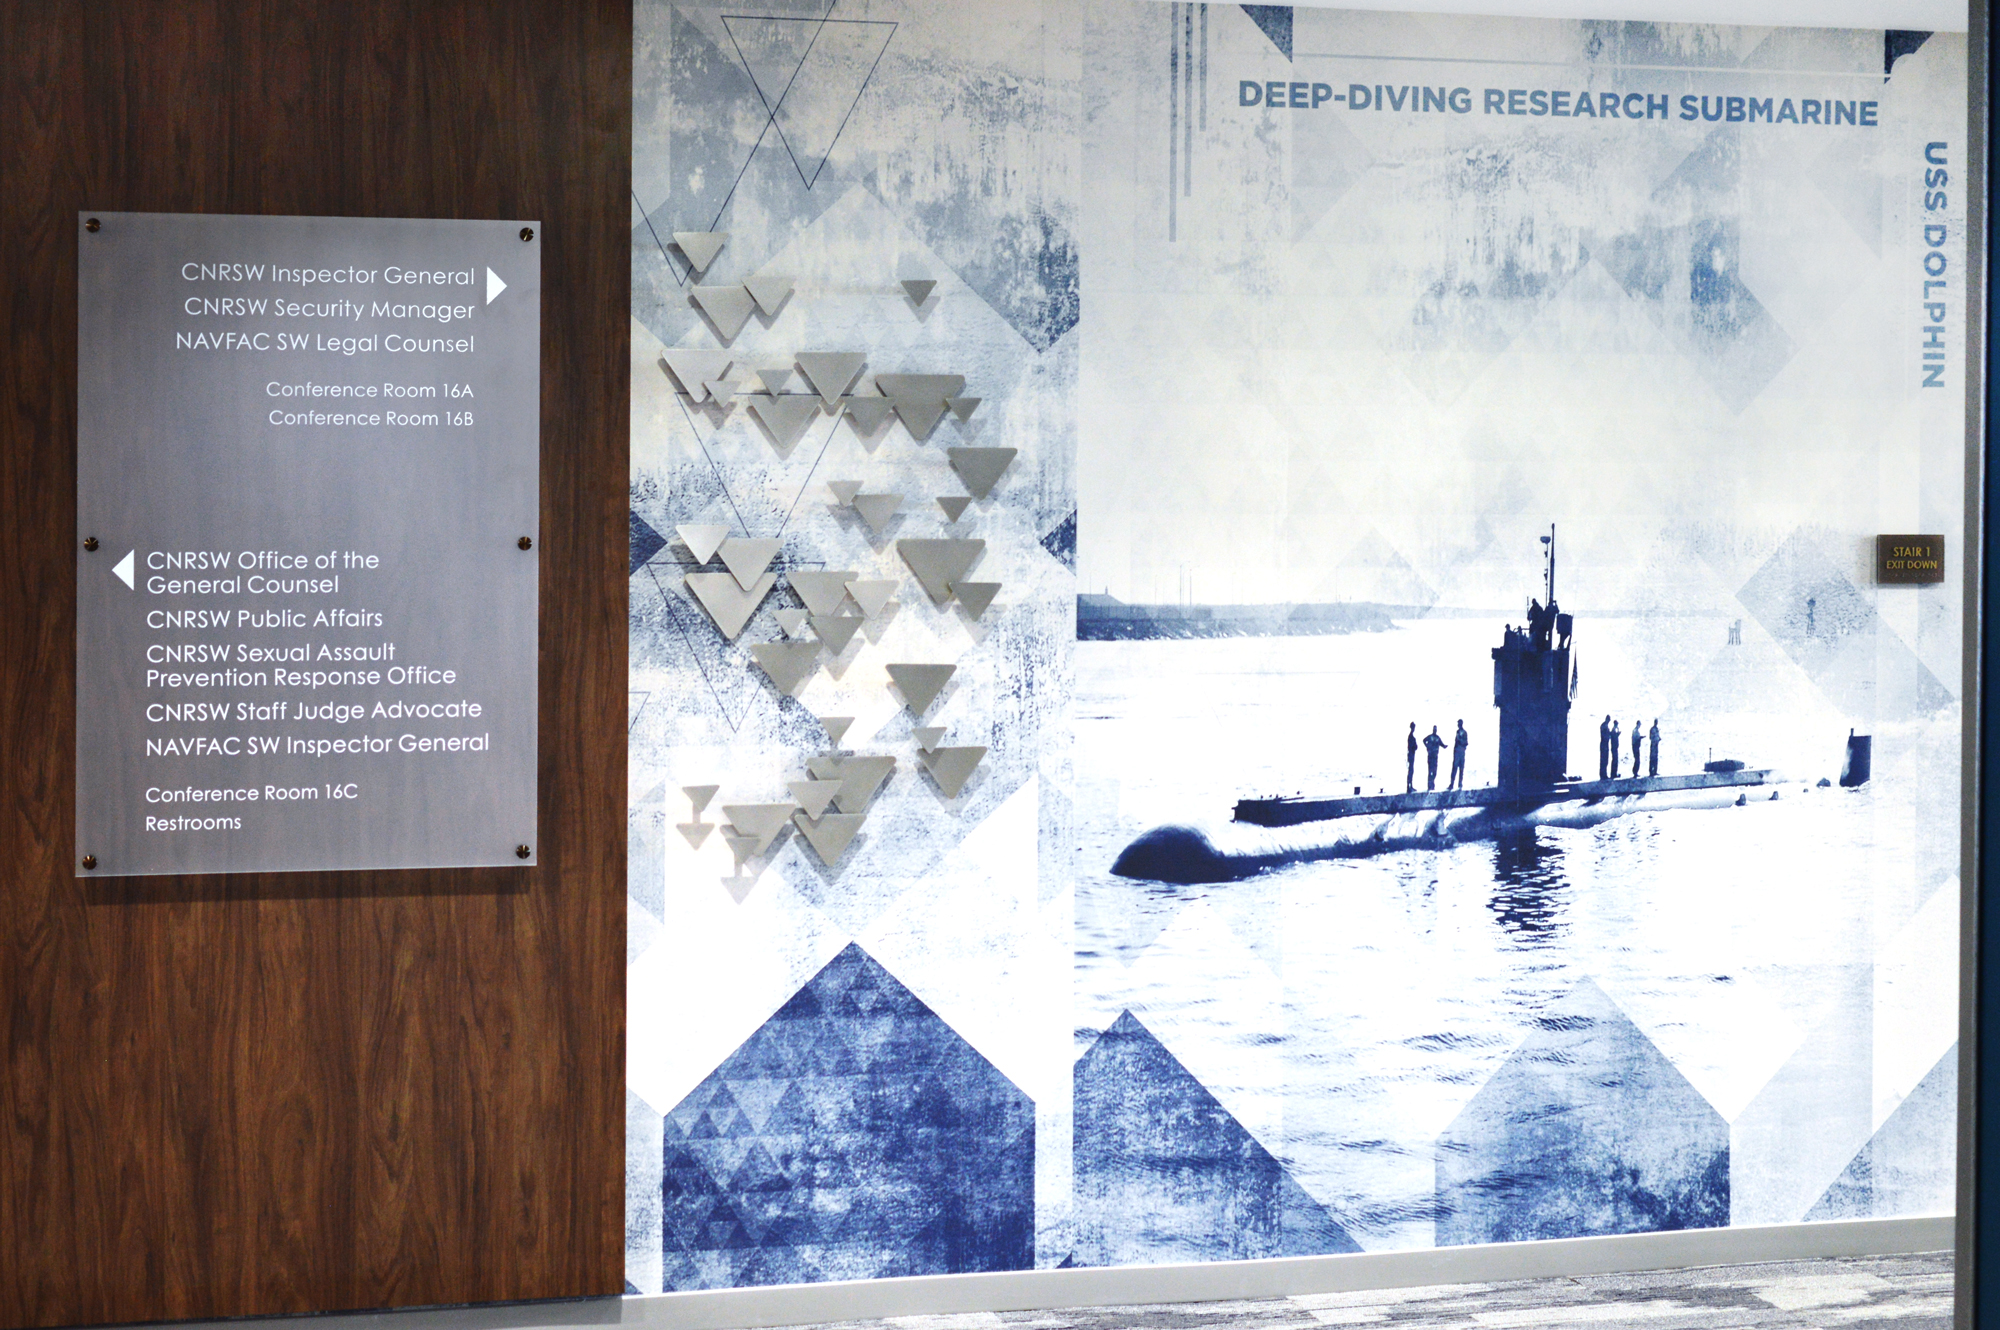 Amplify wall covering at Navy headquarters San Diego